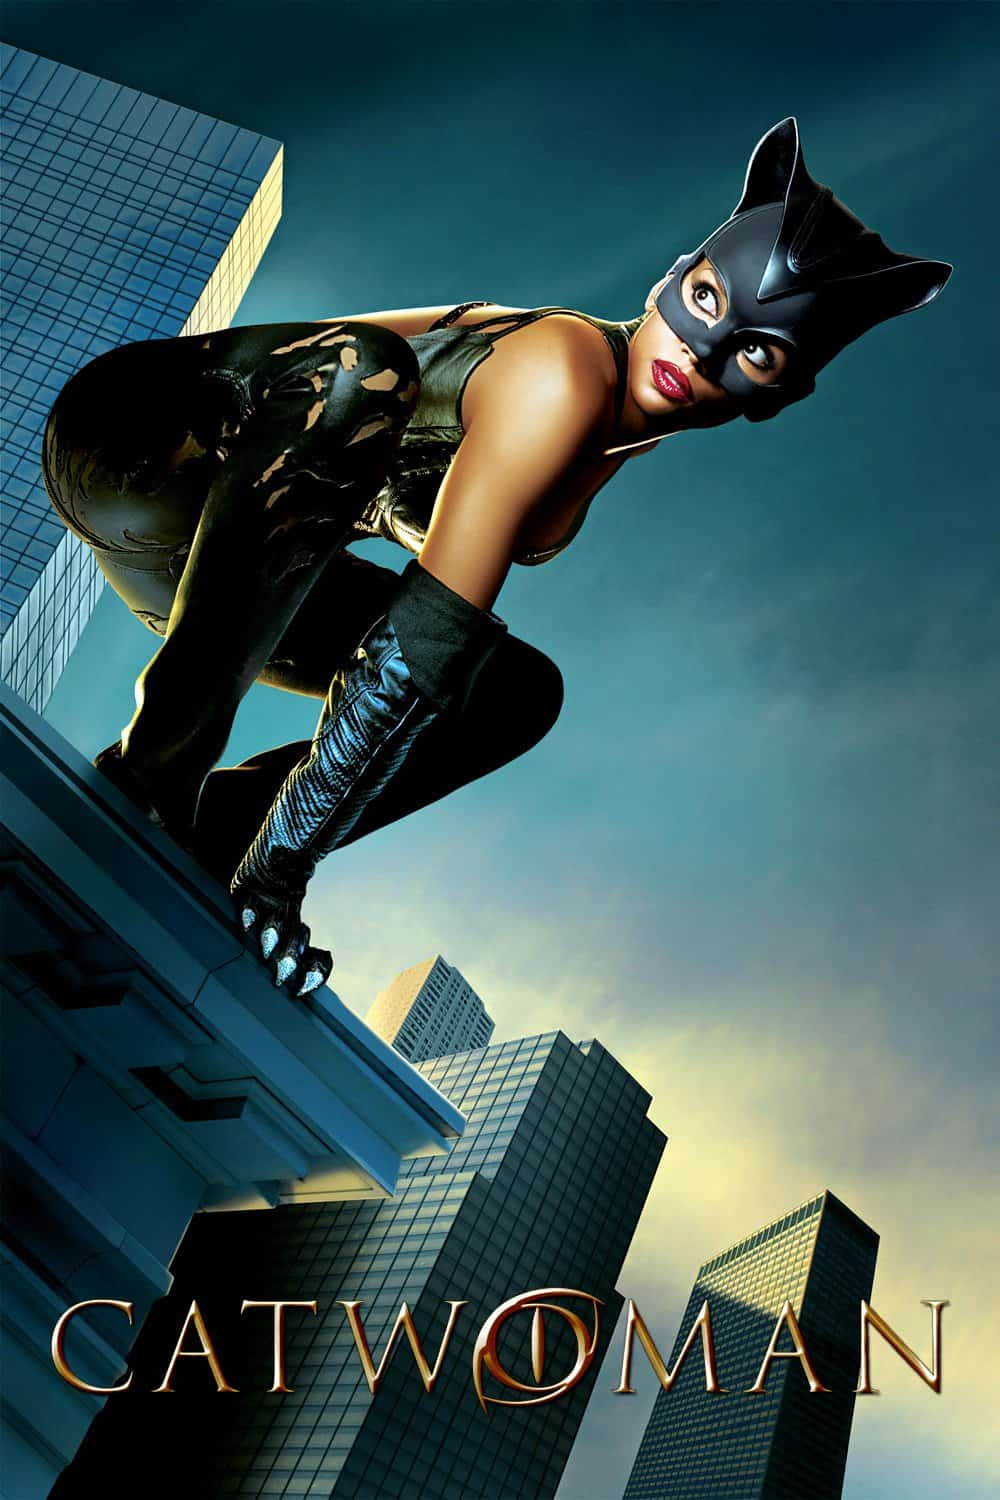 Catwoman, 2004